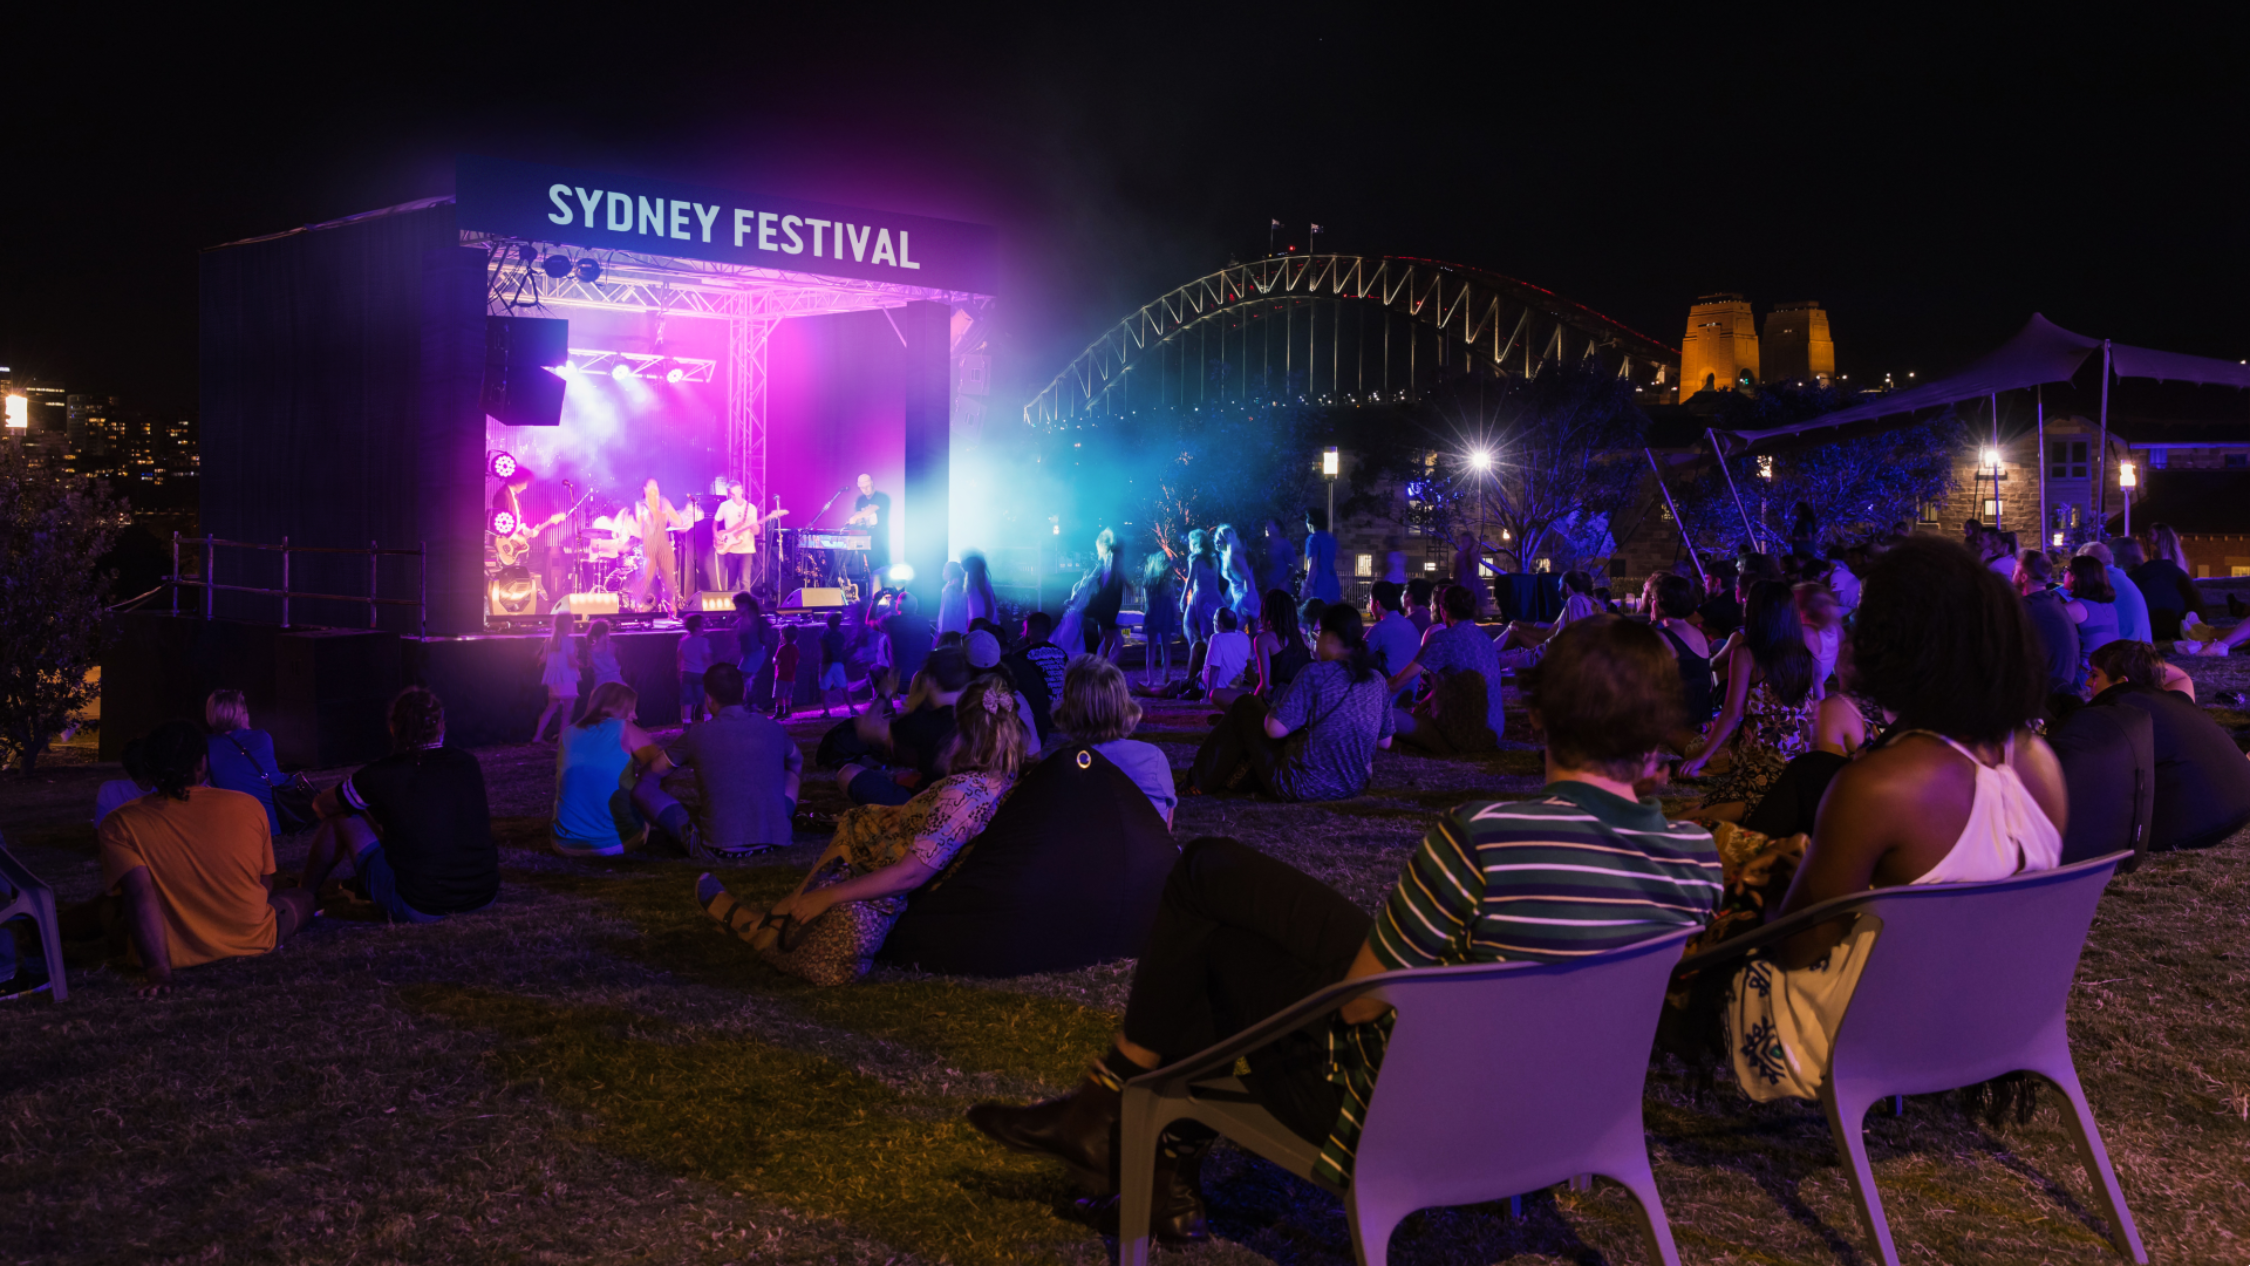 A night time view of the Sydney Festival 2021Barangaroo Headlands stage with the Harbour Bridge in the background